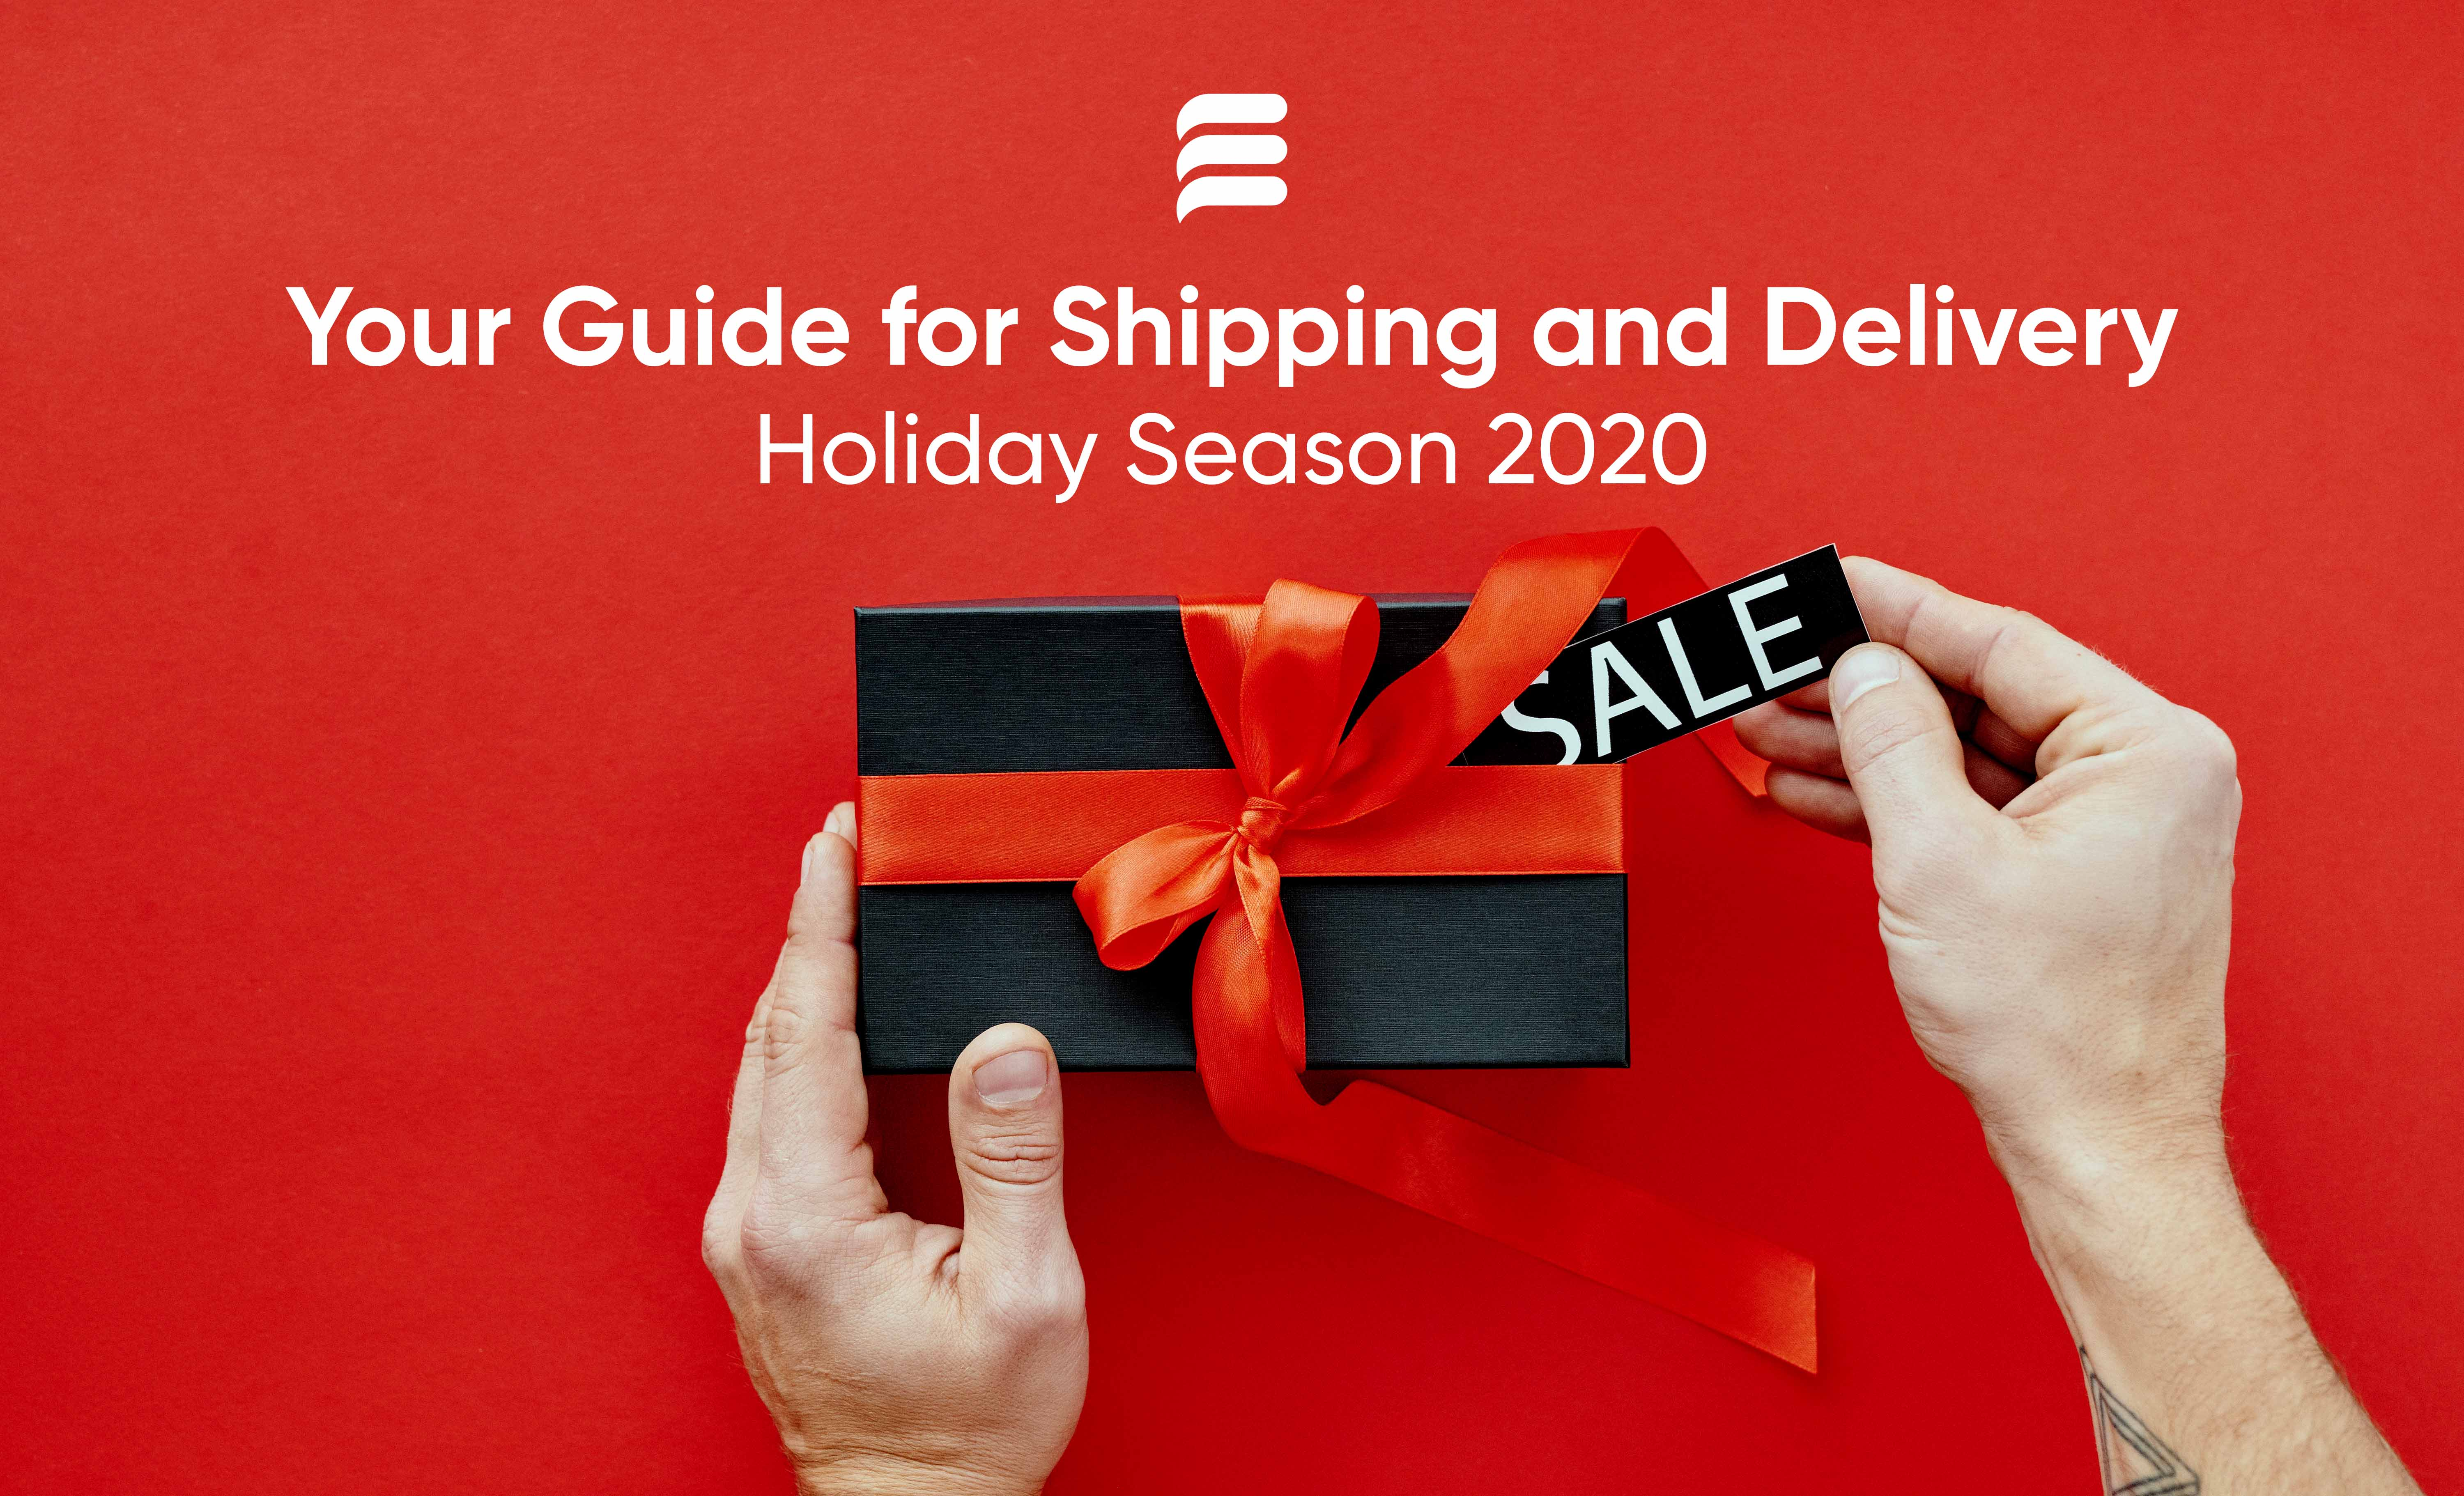 holiday shipping and delivery, shipping and delivery, holidays 2020, ecommerce, online store, curbside pickup